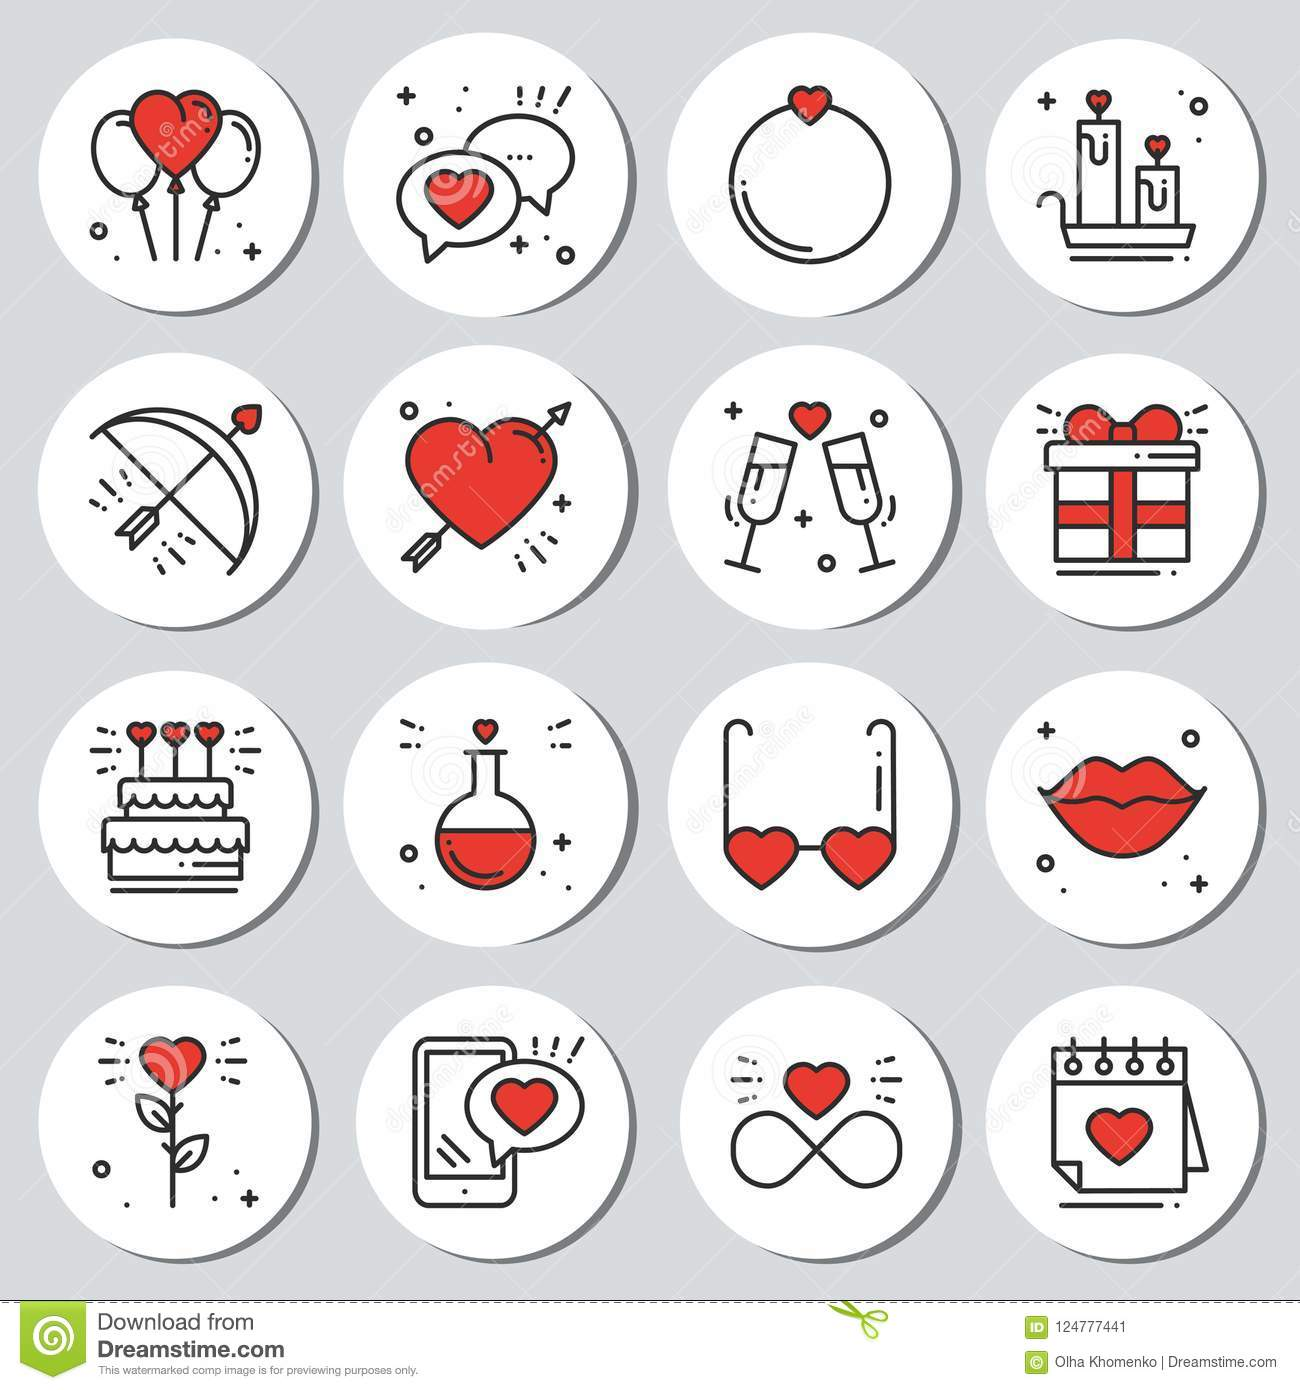 This is a photo of Valentine Stickers Printable intended for happy